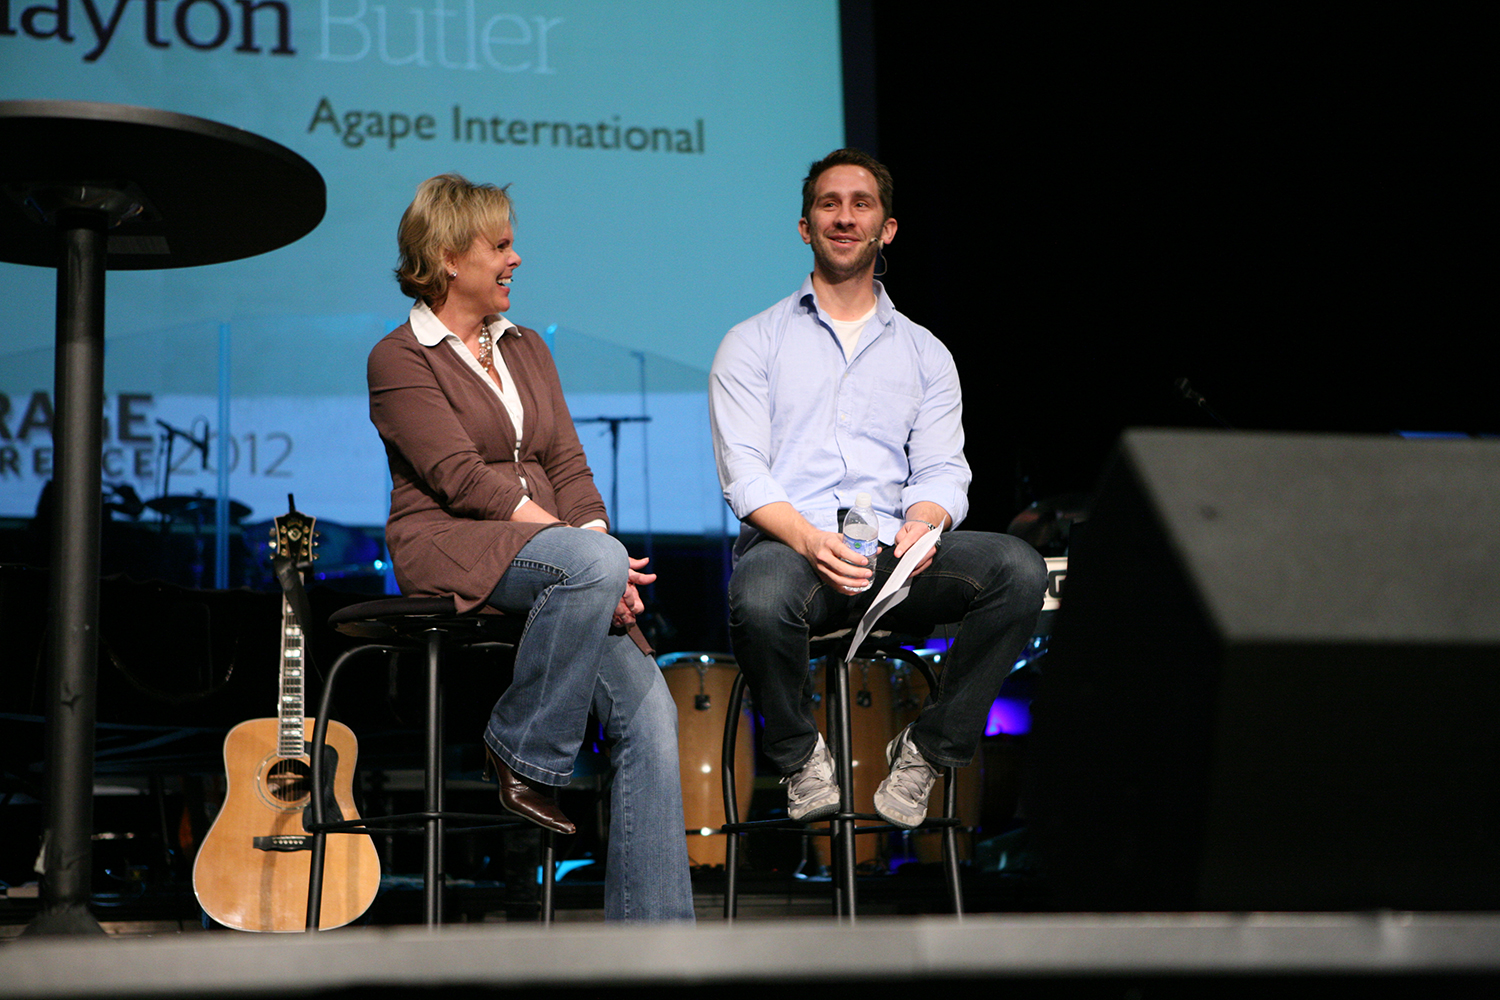 Jenny Williamson, CEO/Founder of Courage Worldwide; Clayton Butler, Agape International